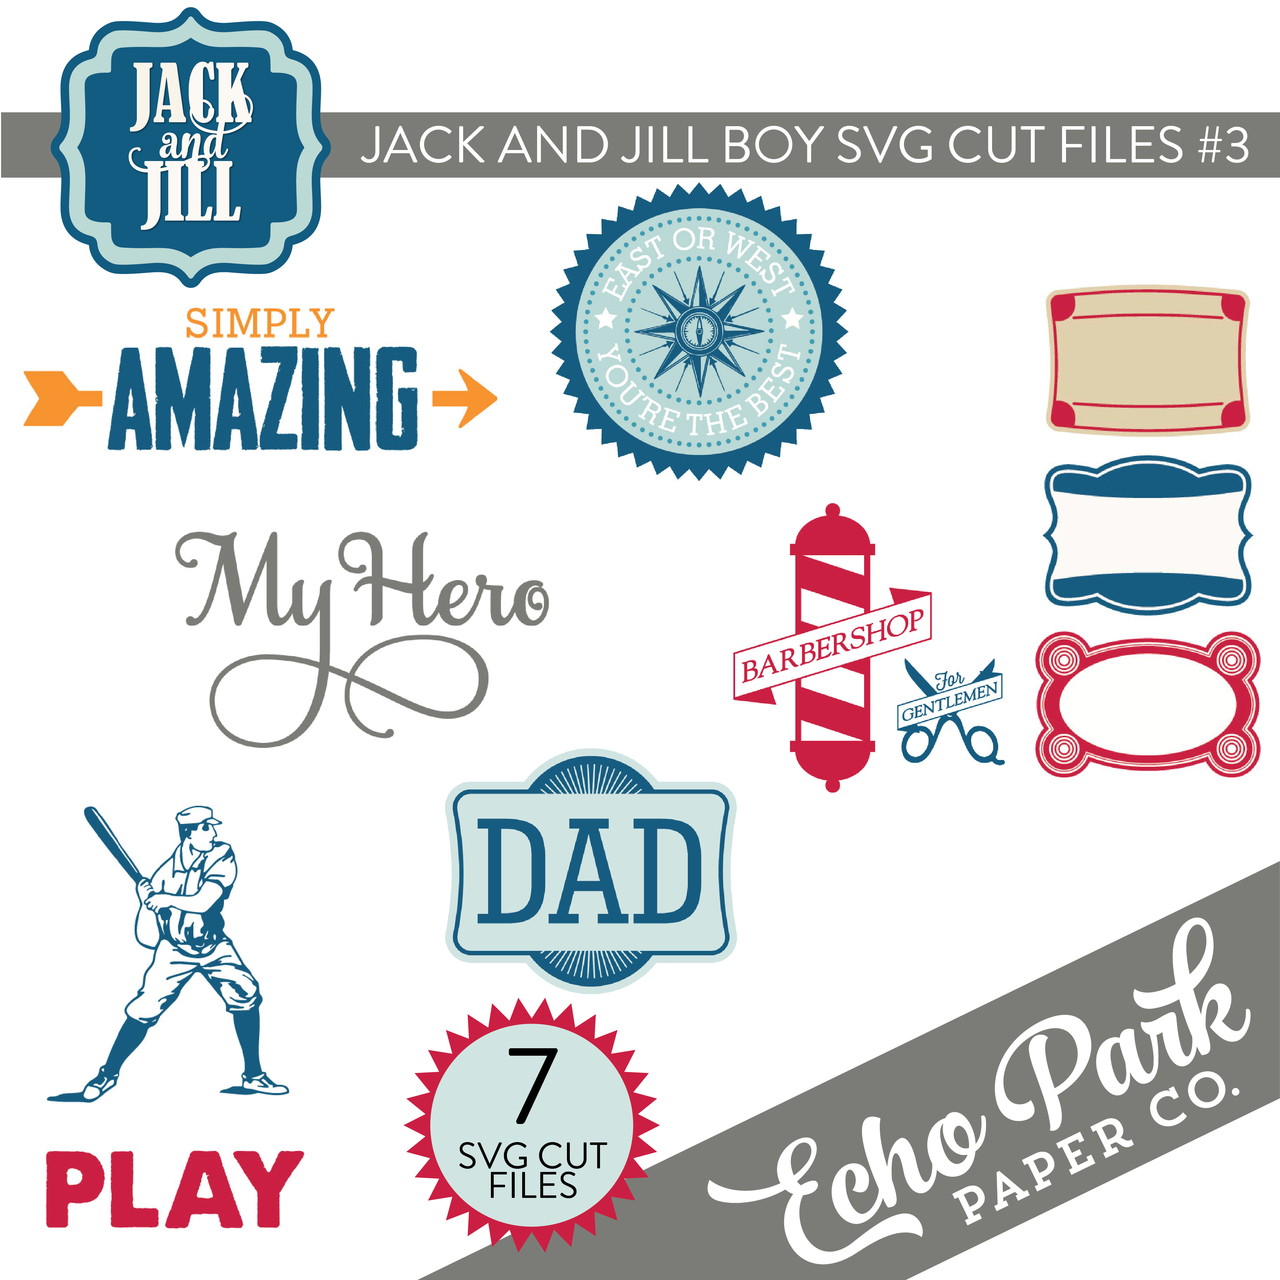 Jack and Jill - Boy SVG Cut Files #3